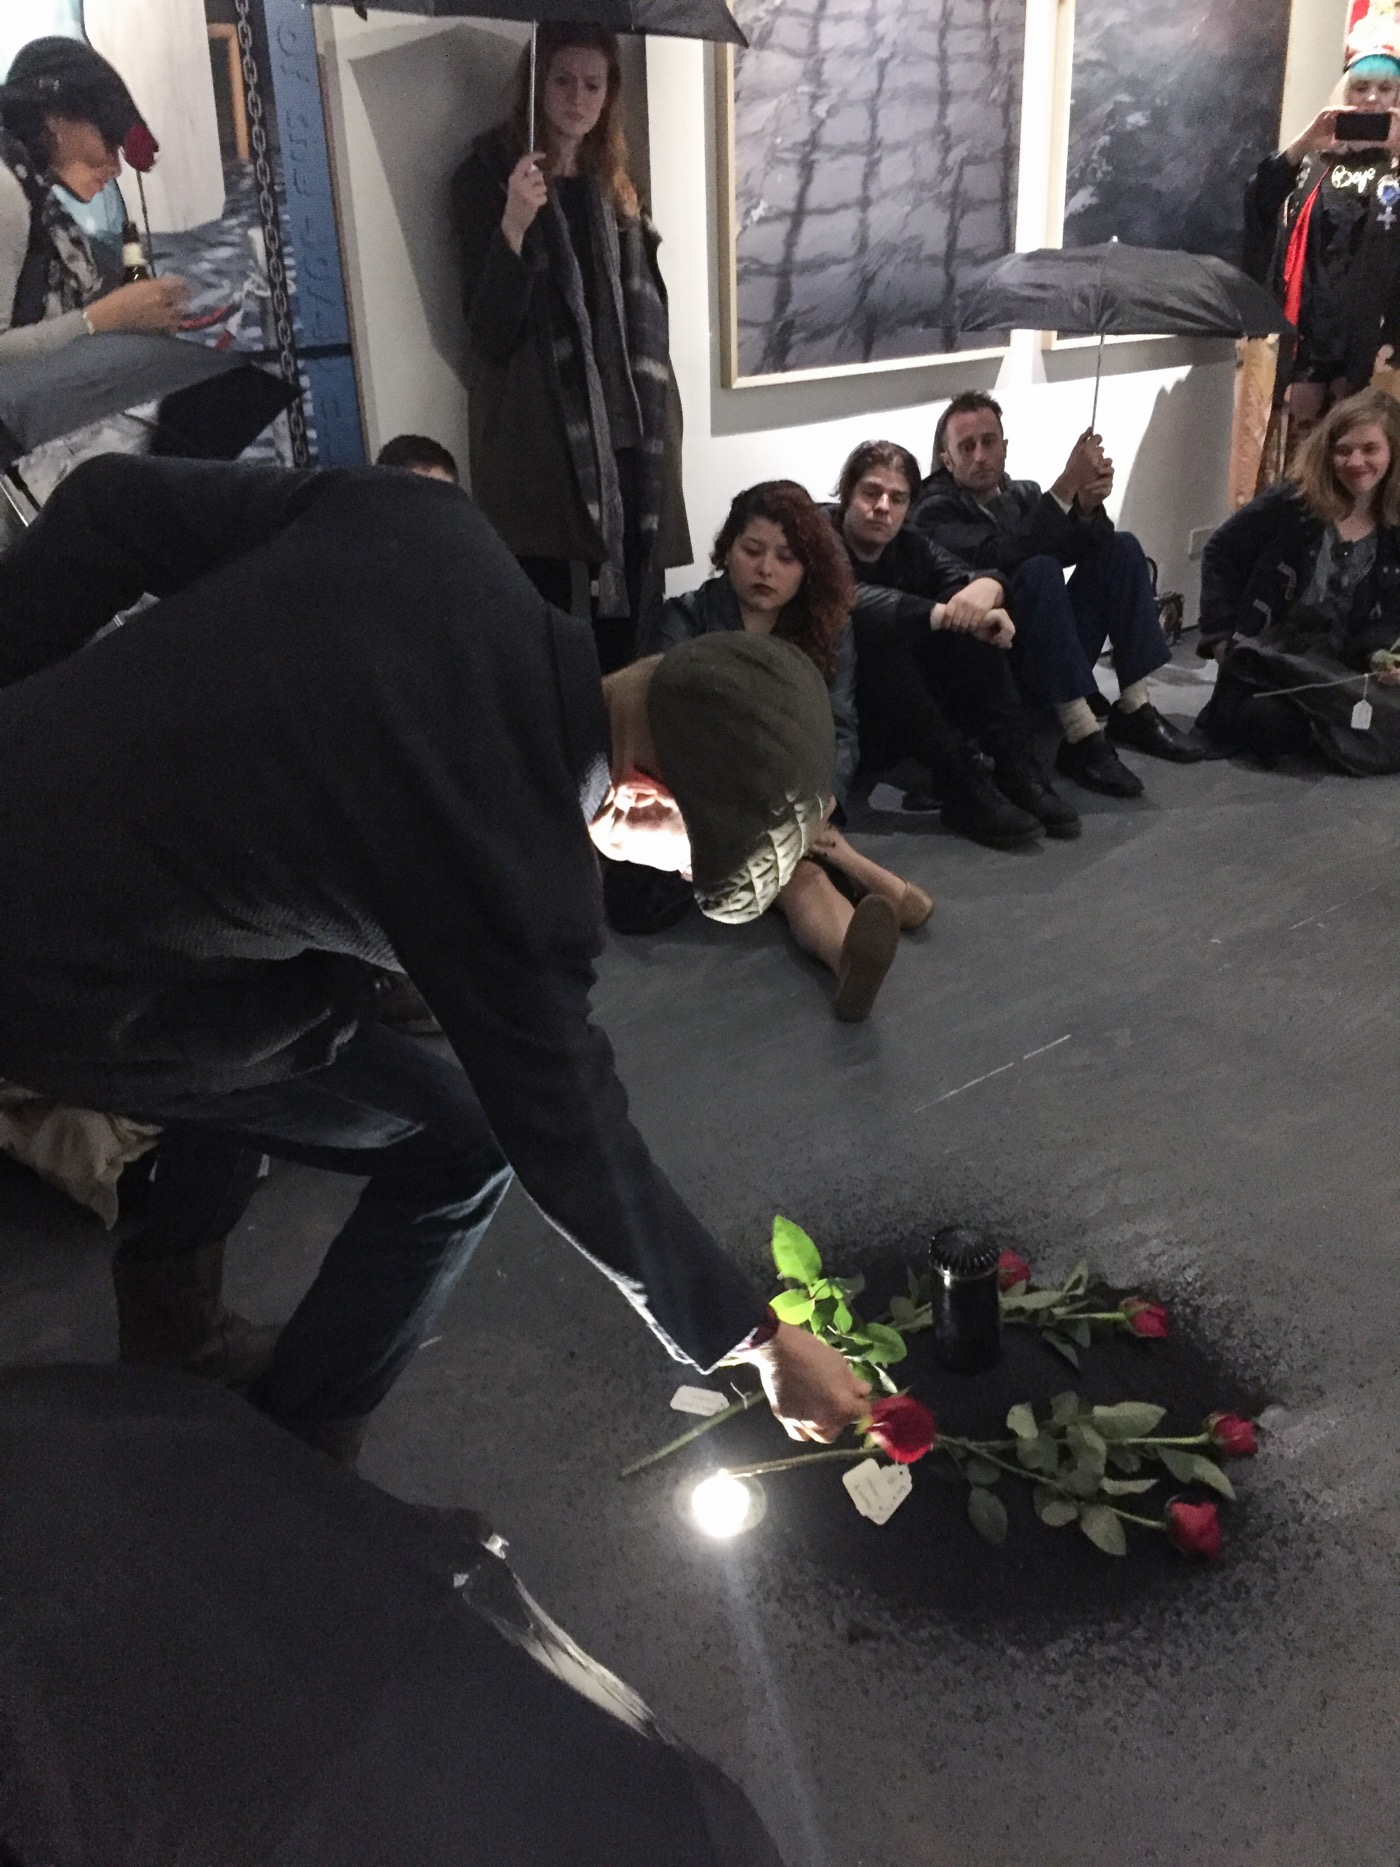 During Butz' performance audience members lay flowers on an earthen mound. Photo by Ventiko